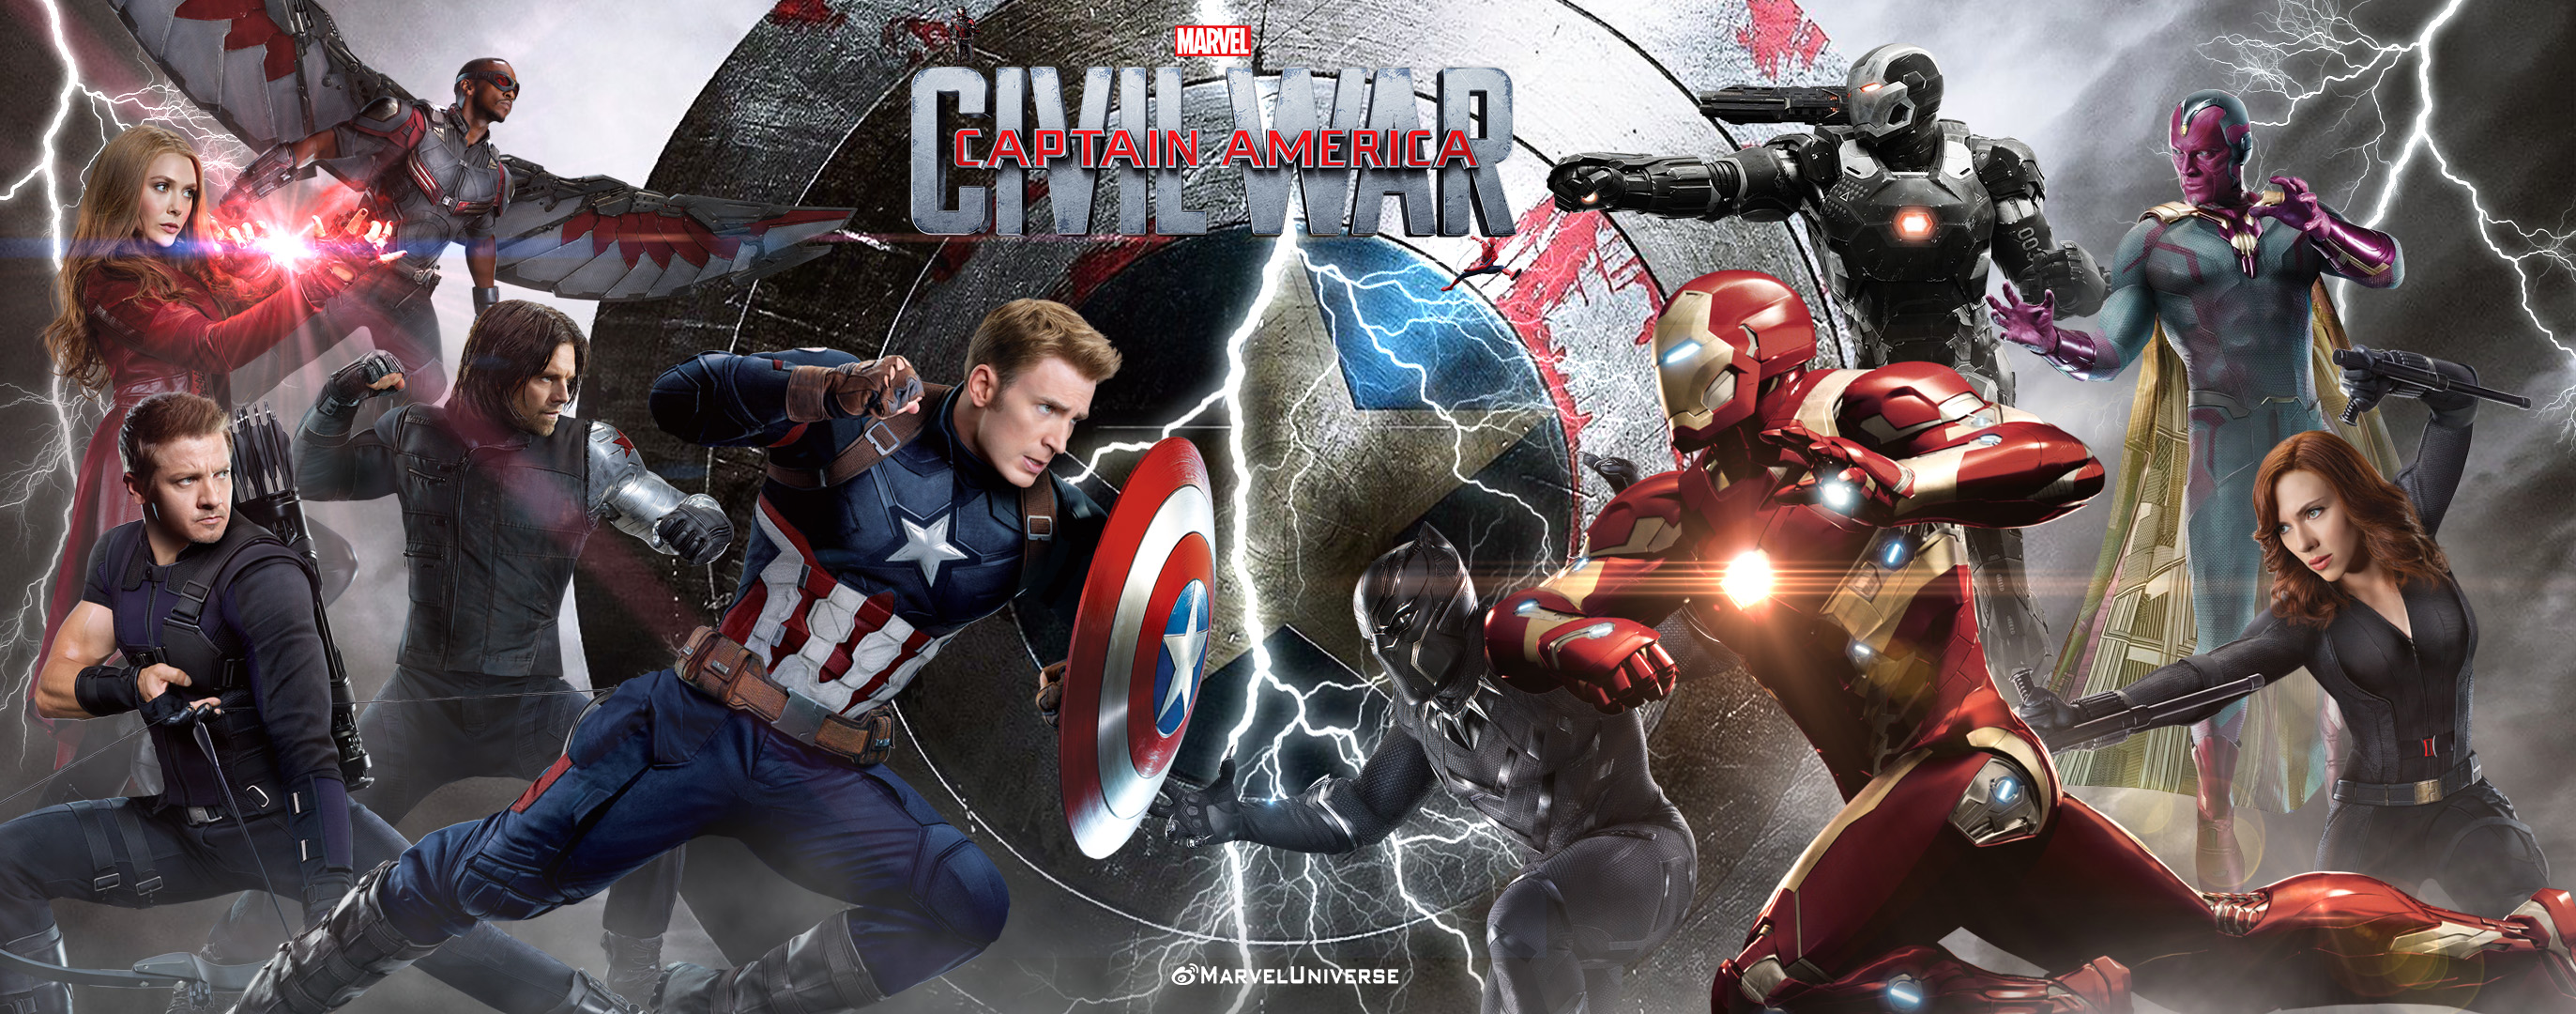 captain america civil war wallpapers by chenshijie9095 on